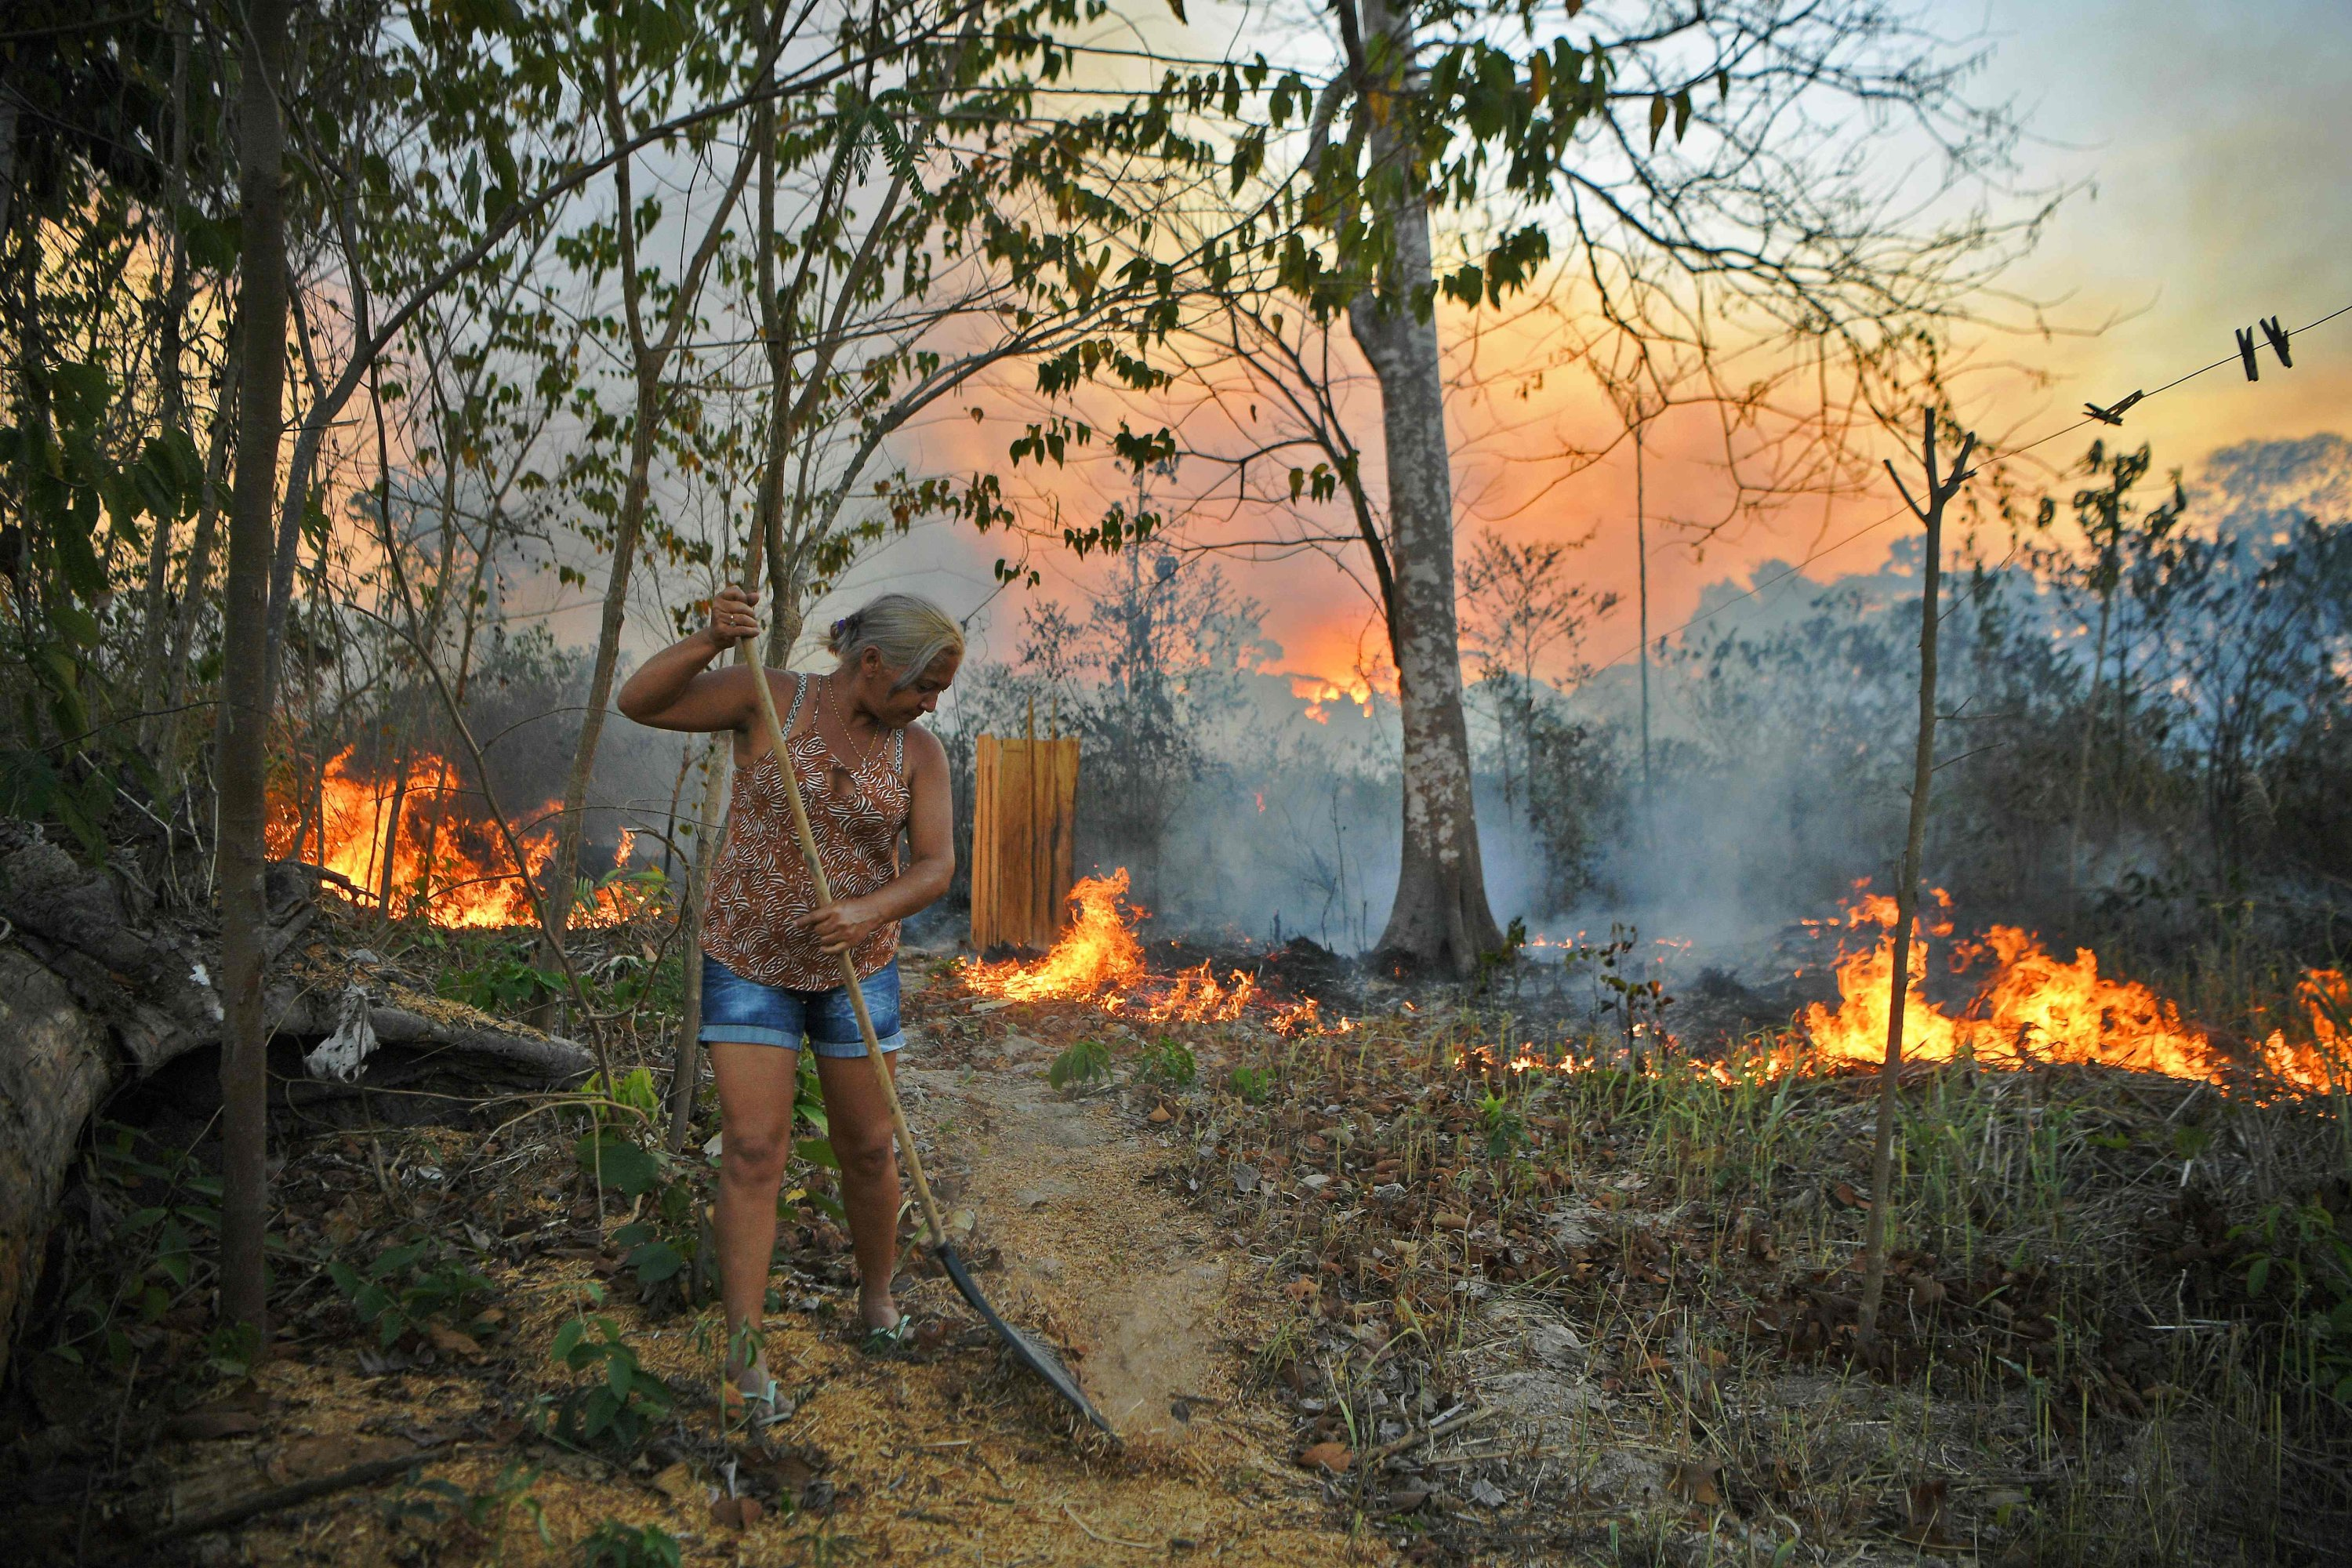 Idelia Lima Lisboa, wife of a farmer, tries to clear a path of dry leaves as the fire approaches their house in an area of Amazon rainforest, south of Novo Progresso in Para state, Brazil, Aug. 15, 2020. (AFP Photo)